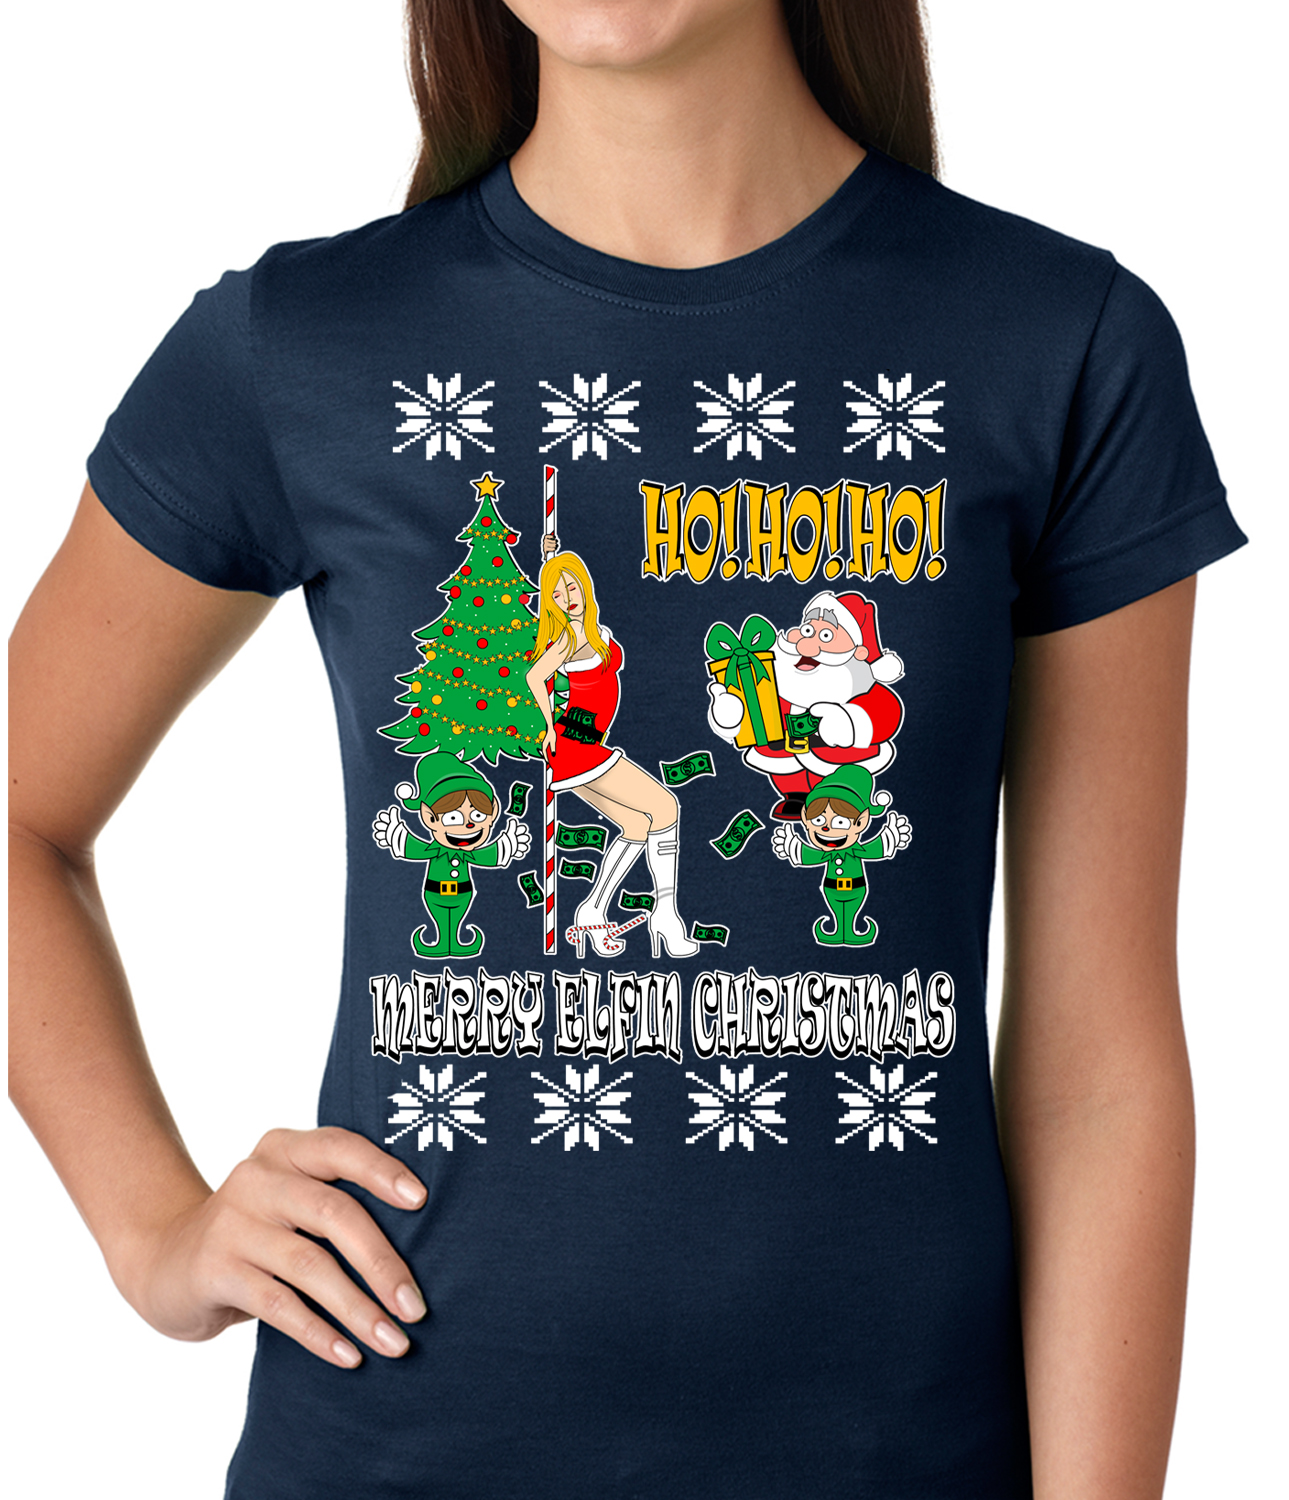 naughty christmas t shirts - Dirty Christmas Sweaters